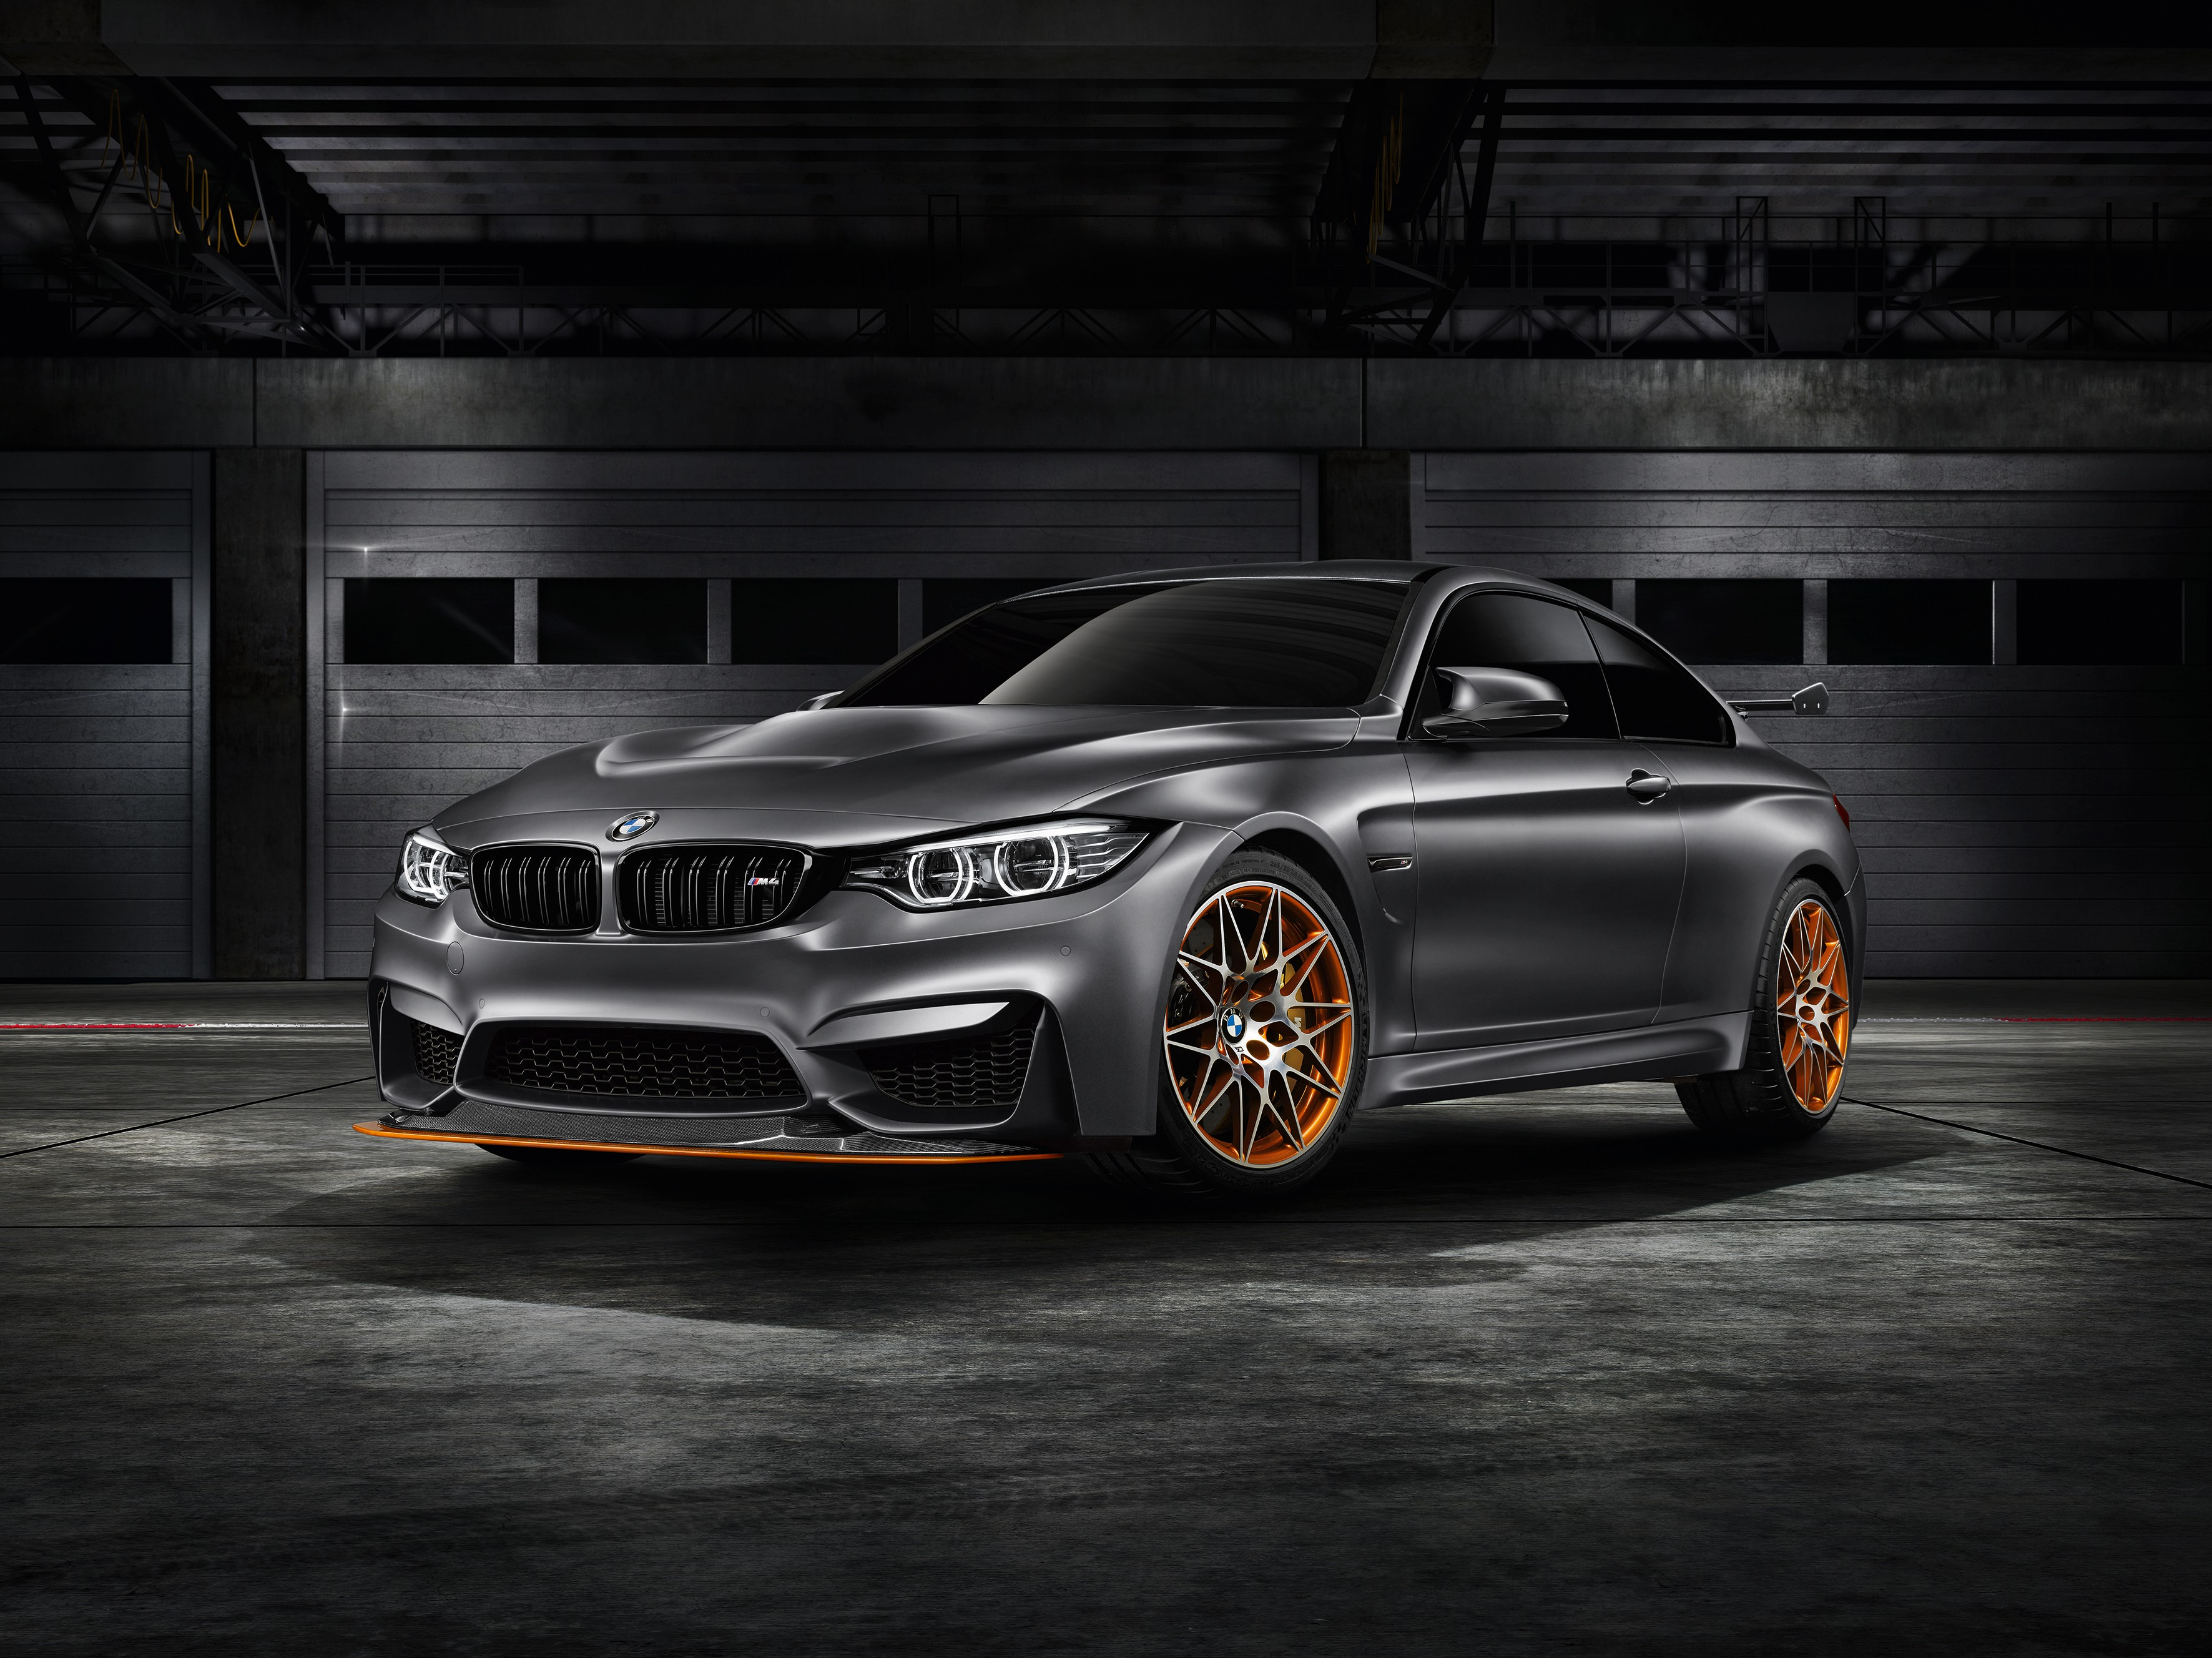 bmw-concept-m4-gts-makes-world-debut-at-pebble-beach-with-oled-lighting-photo-gallery_2